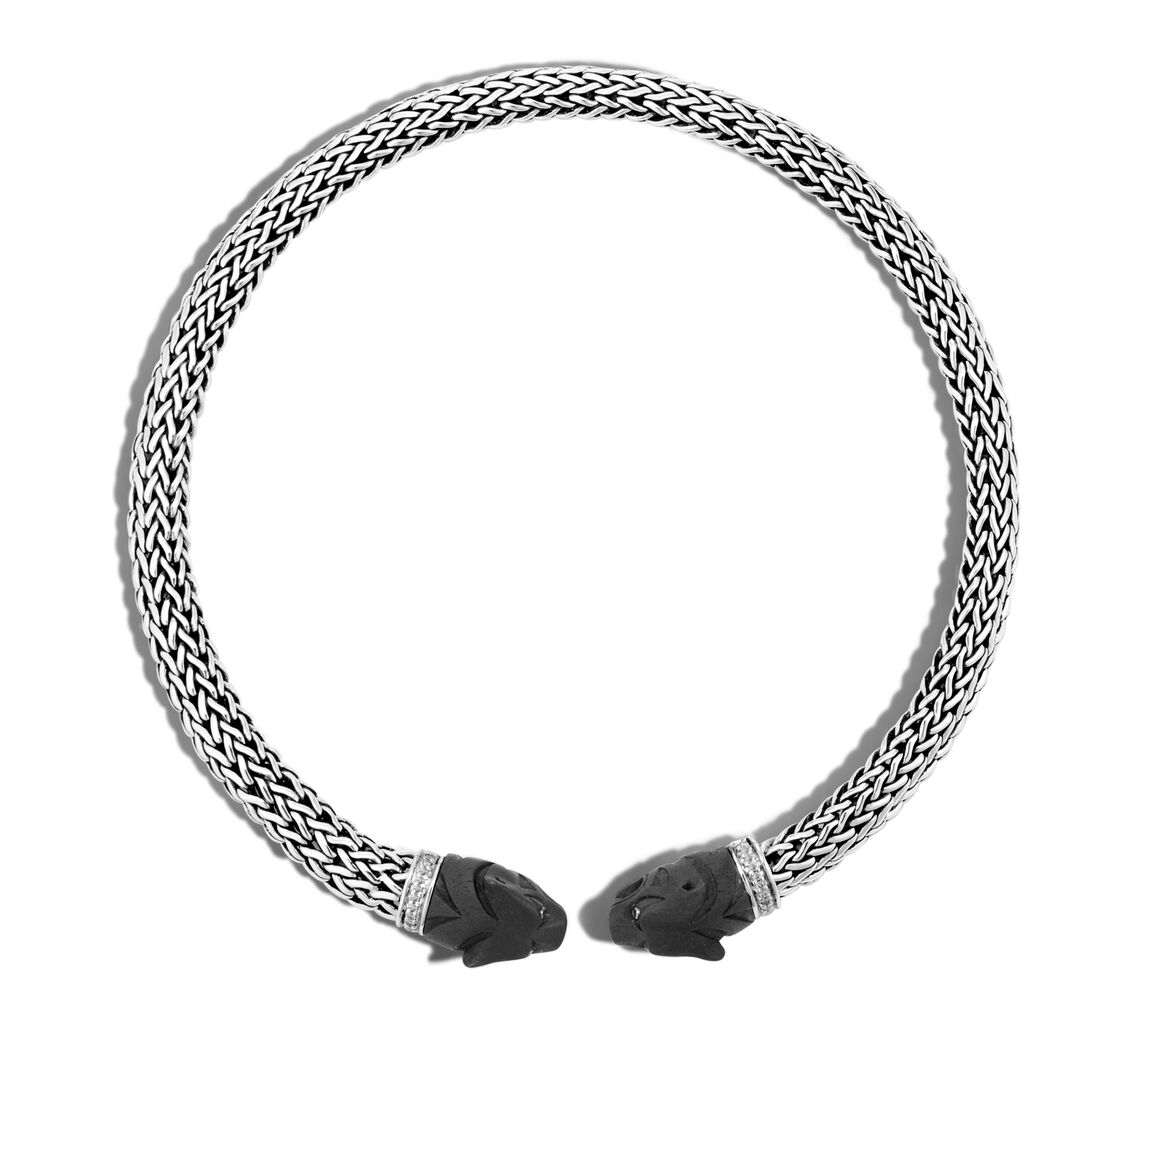 Legends Macan Choker Necklace, Silver, Gemstone and Diamonds